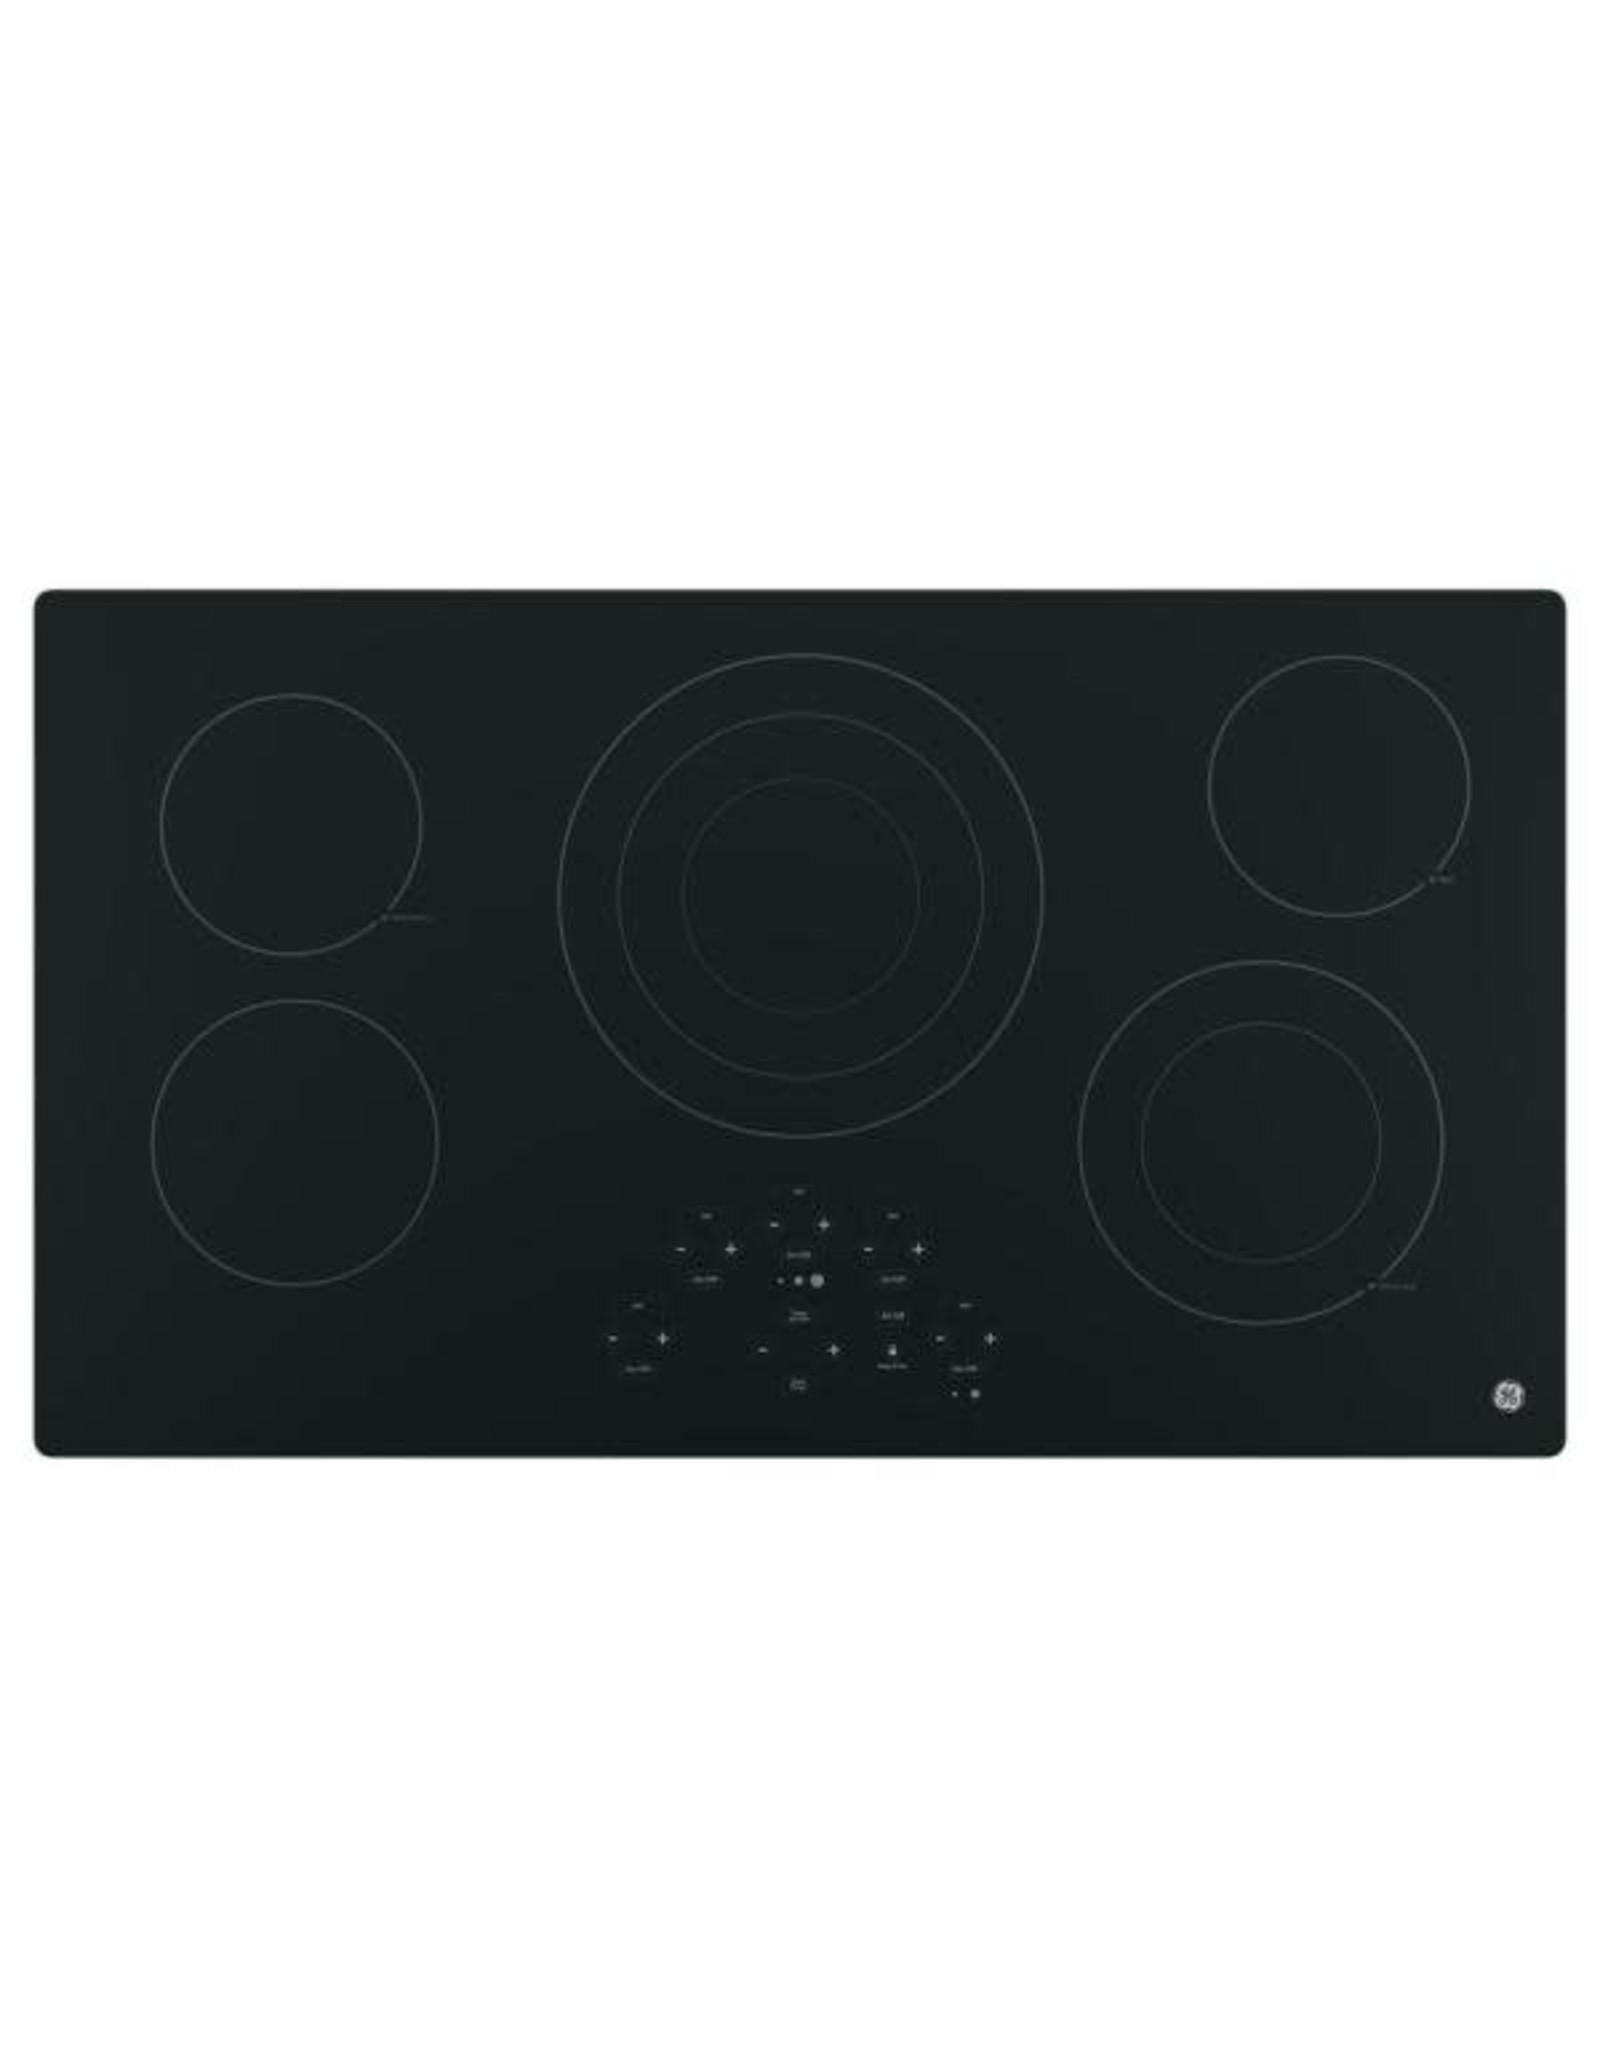 GE JP5036DJBB 36 in. Radiant Electric Cooktop in Black with 5 Elements Including Power Boil